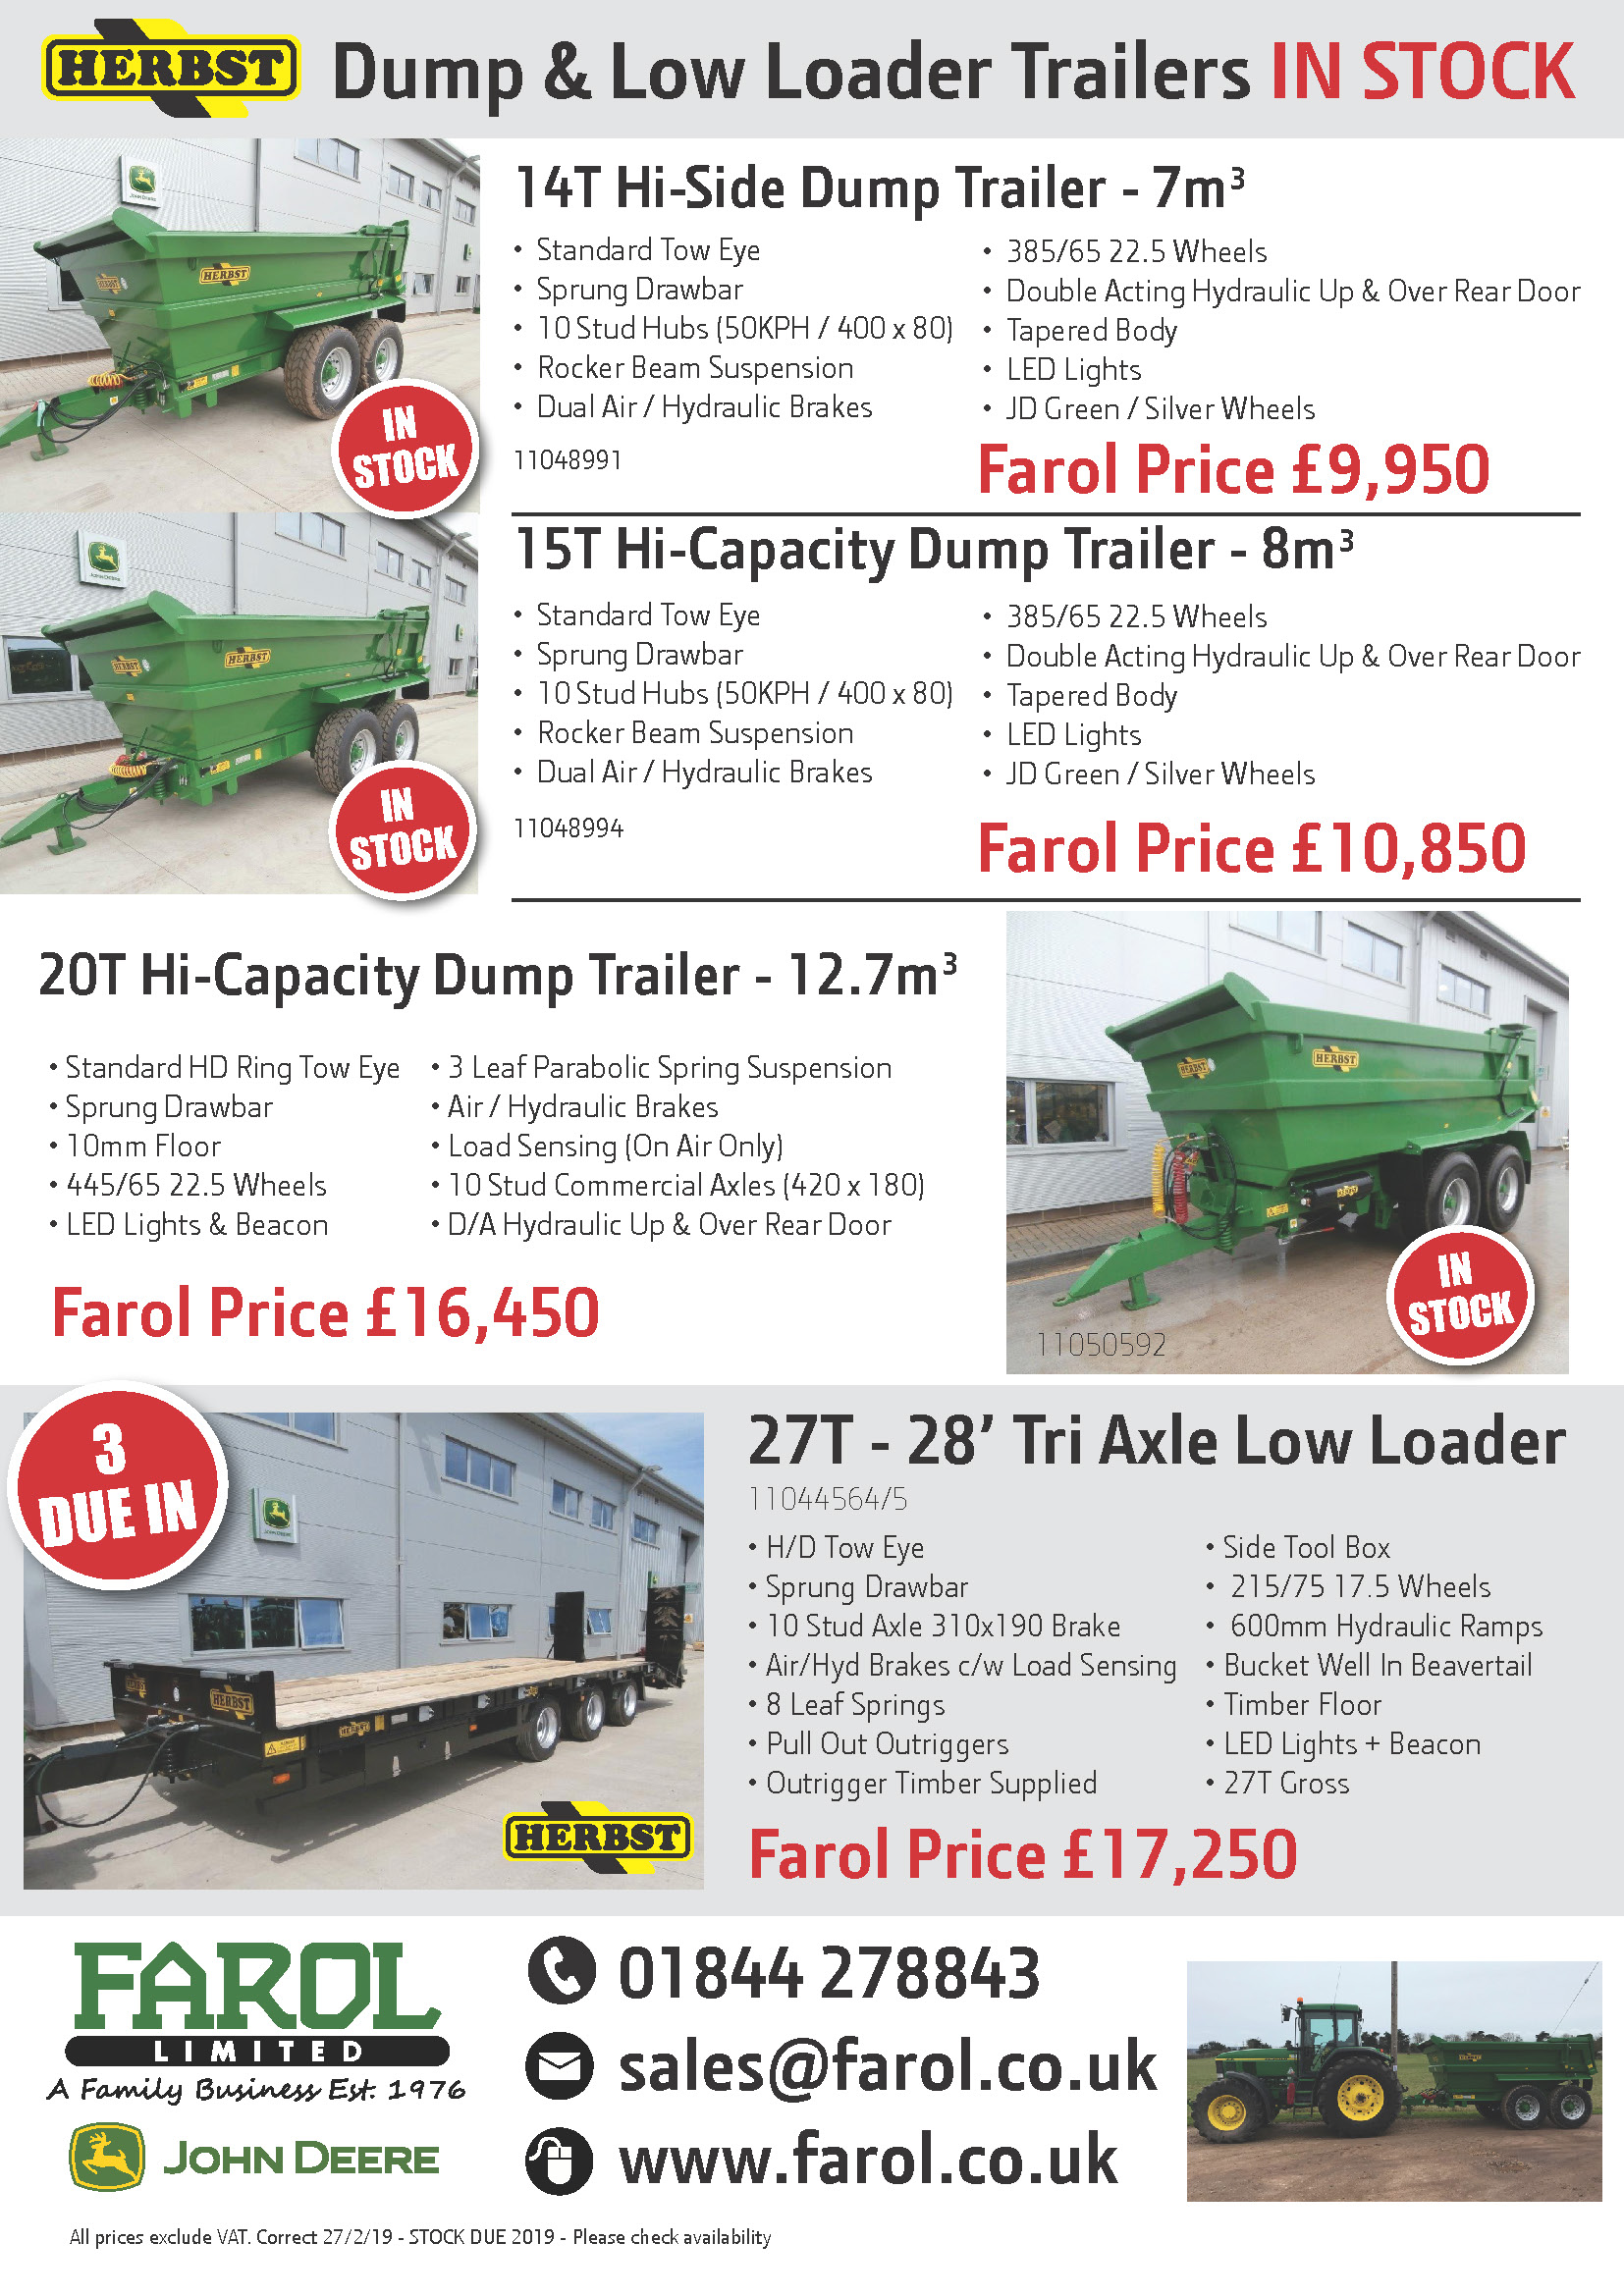 Herbst Trailer Stock Offers